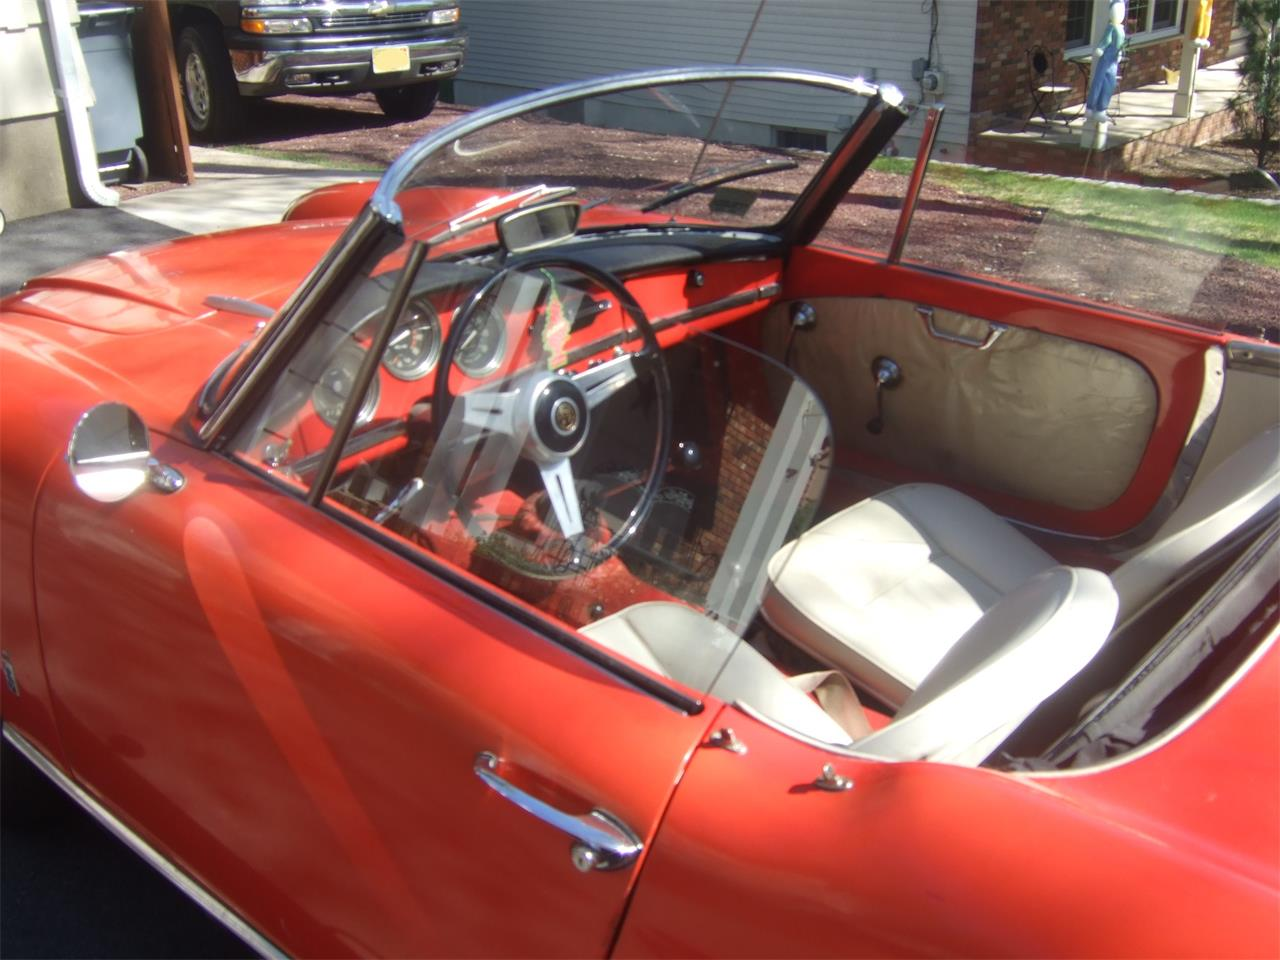 Large Picture of Classic 1964 Alfa Romeo Giulietta Spider - $38,000.00 Offered by a Private Seller - Q08N